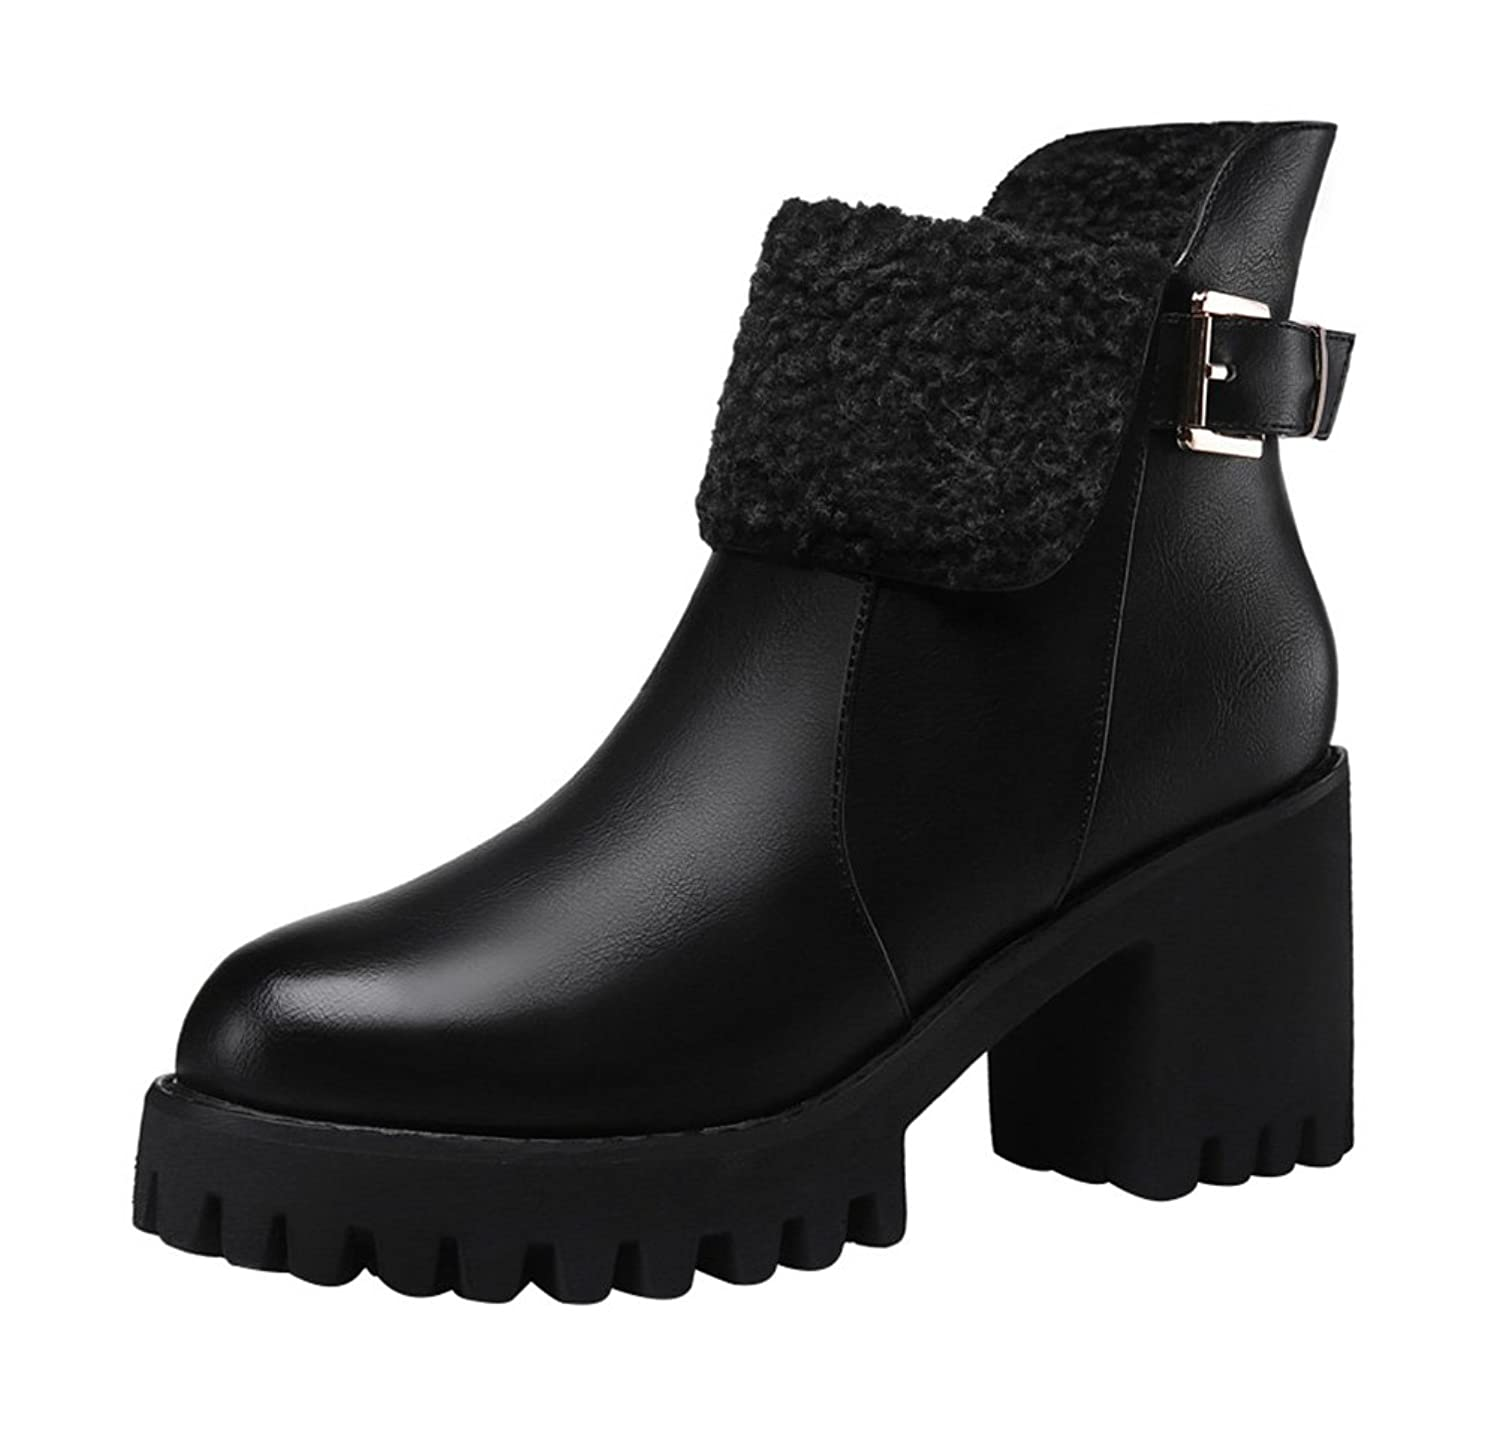 T&Mates Womens Comfort Short Faux Fur Ankle Strap Buckle Side Zip Chunky Heel Ankle Booties